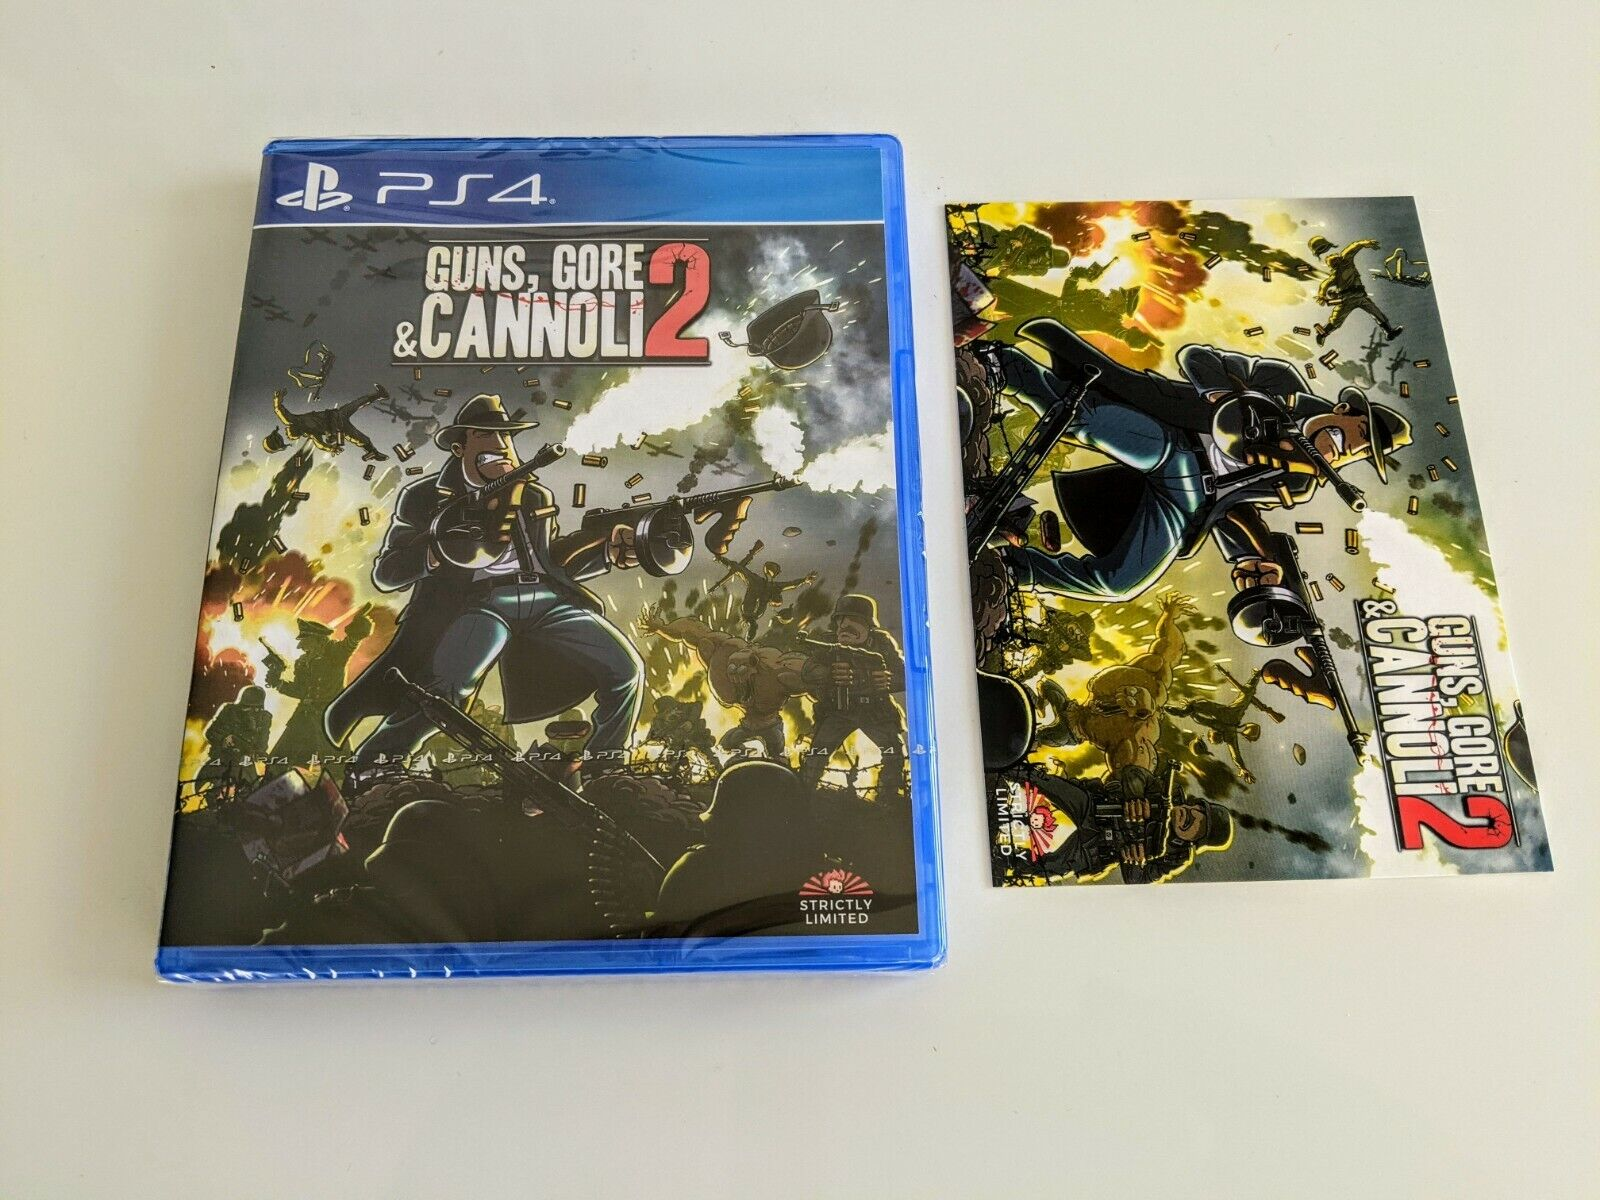 Guns, Gore & Cannoli 2 - PS4 - SLG Strictly Limited Games II NEW Playstation 4